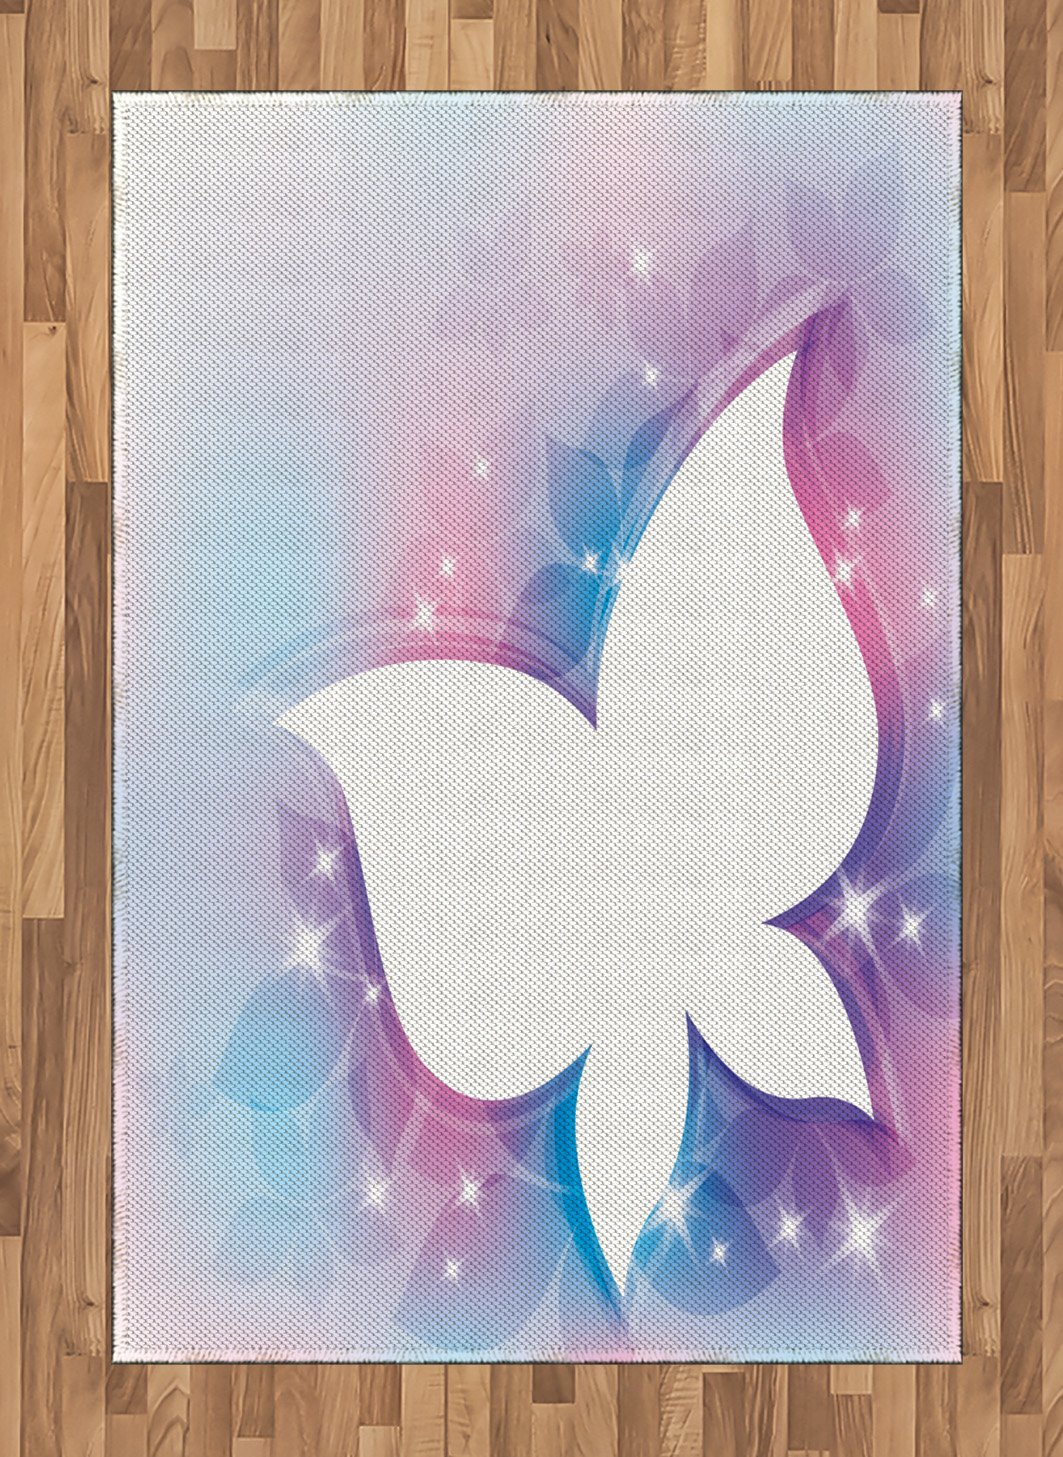 Ambesonne Butterfly Area Rug, Abstract Floral White Butterfly Silhouette on a Magical Spring Meadow Print, Flat Woven Accent Rug for Living Room Bedroom Dining Room, 4 X 5.7 FT, White Pink Blue